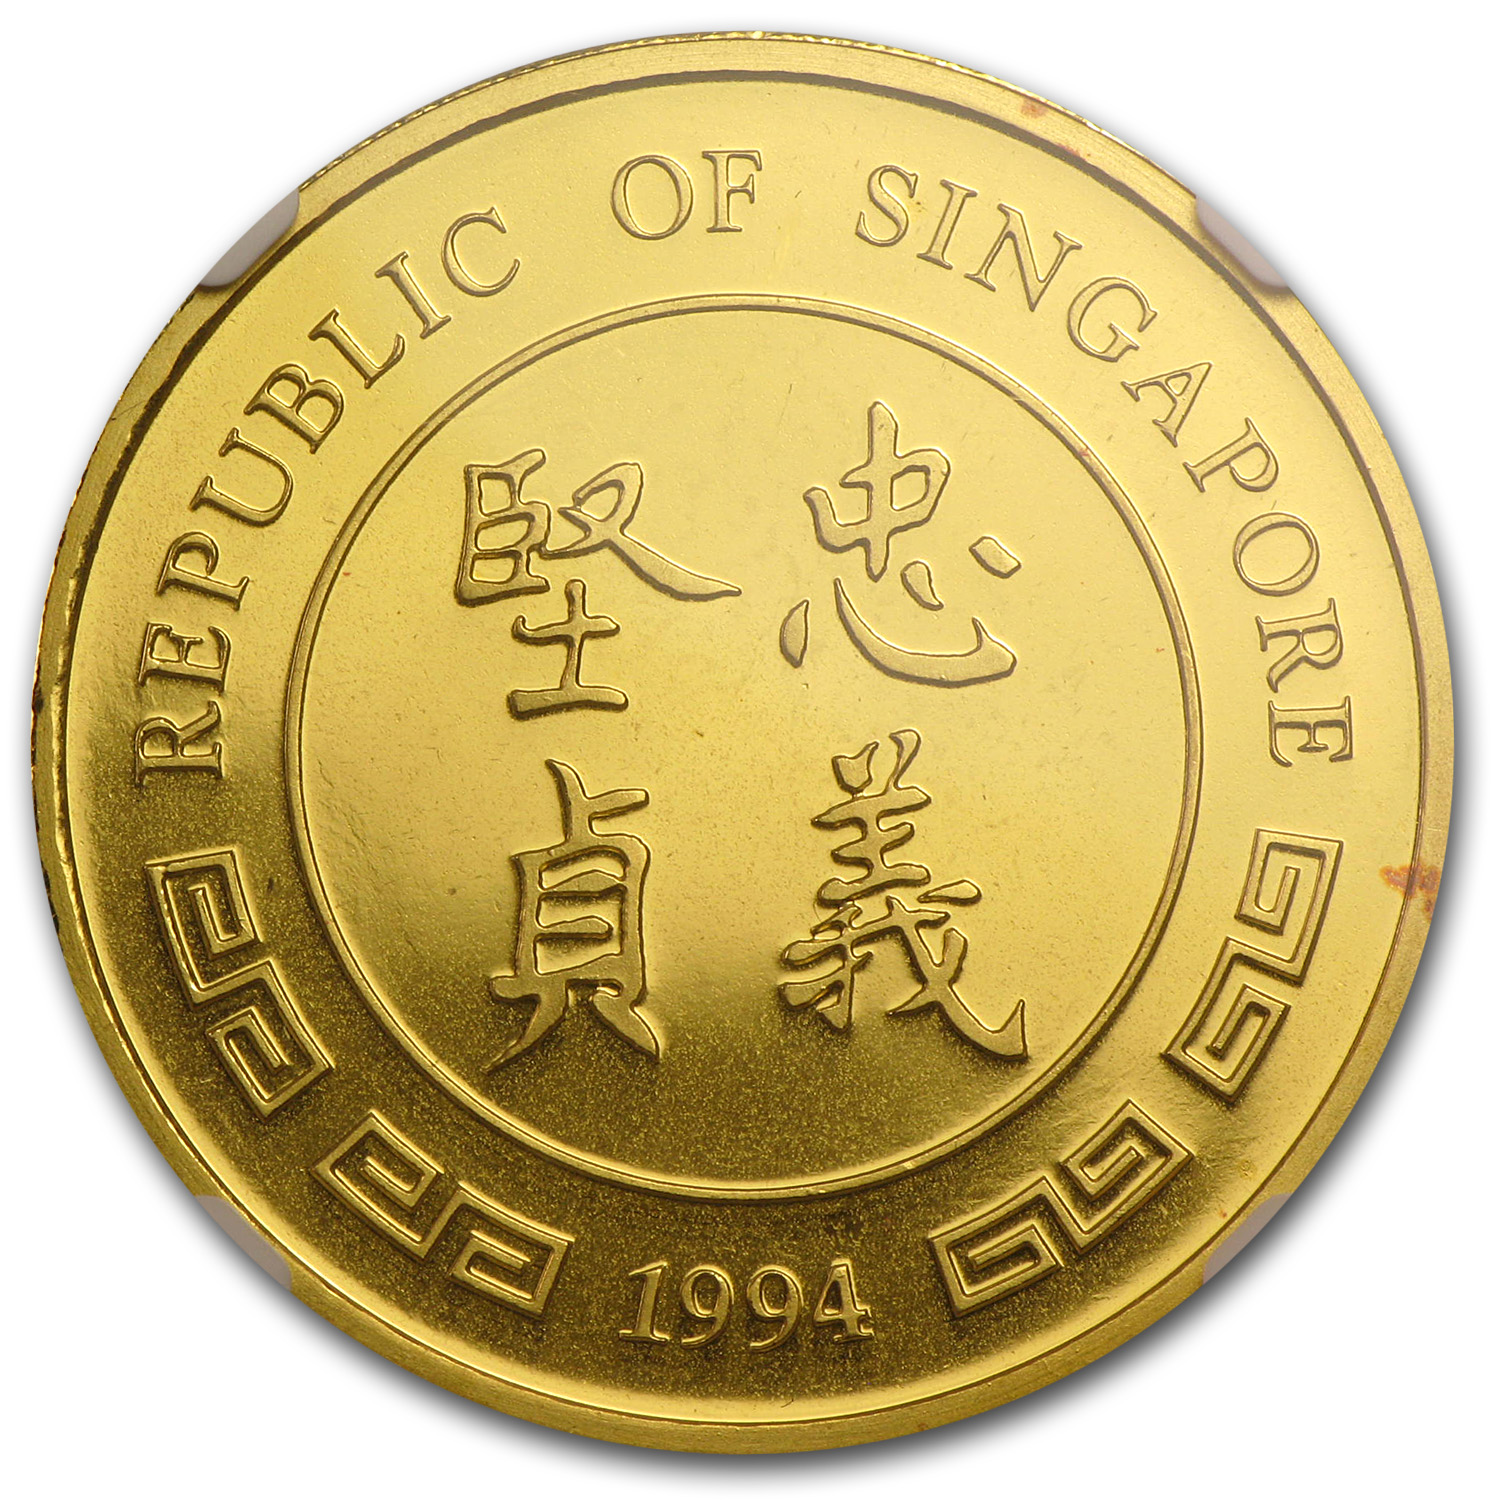 Singapore 1994 100 Singold 1 oz Gold Dog NGC PF-68 UCAM